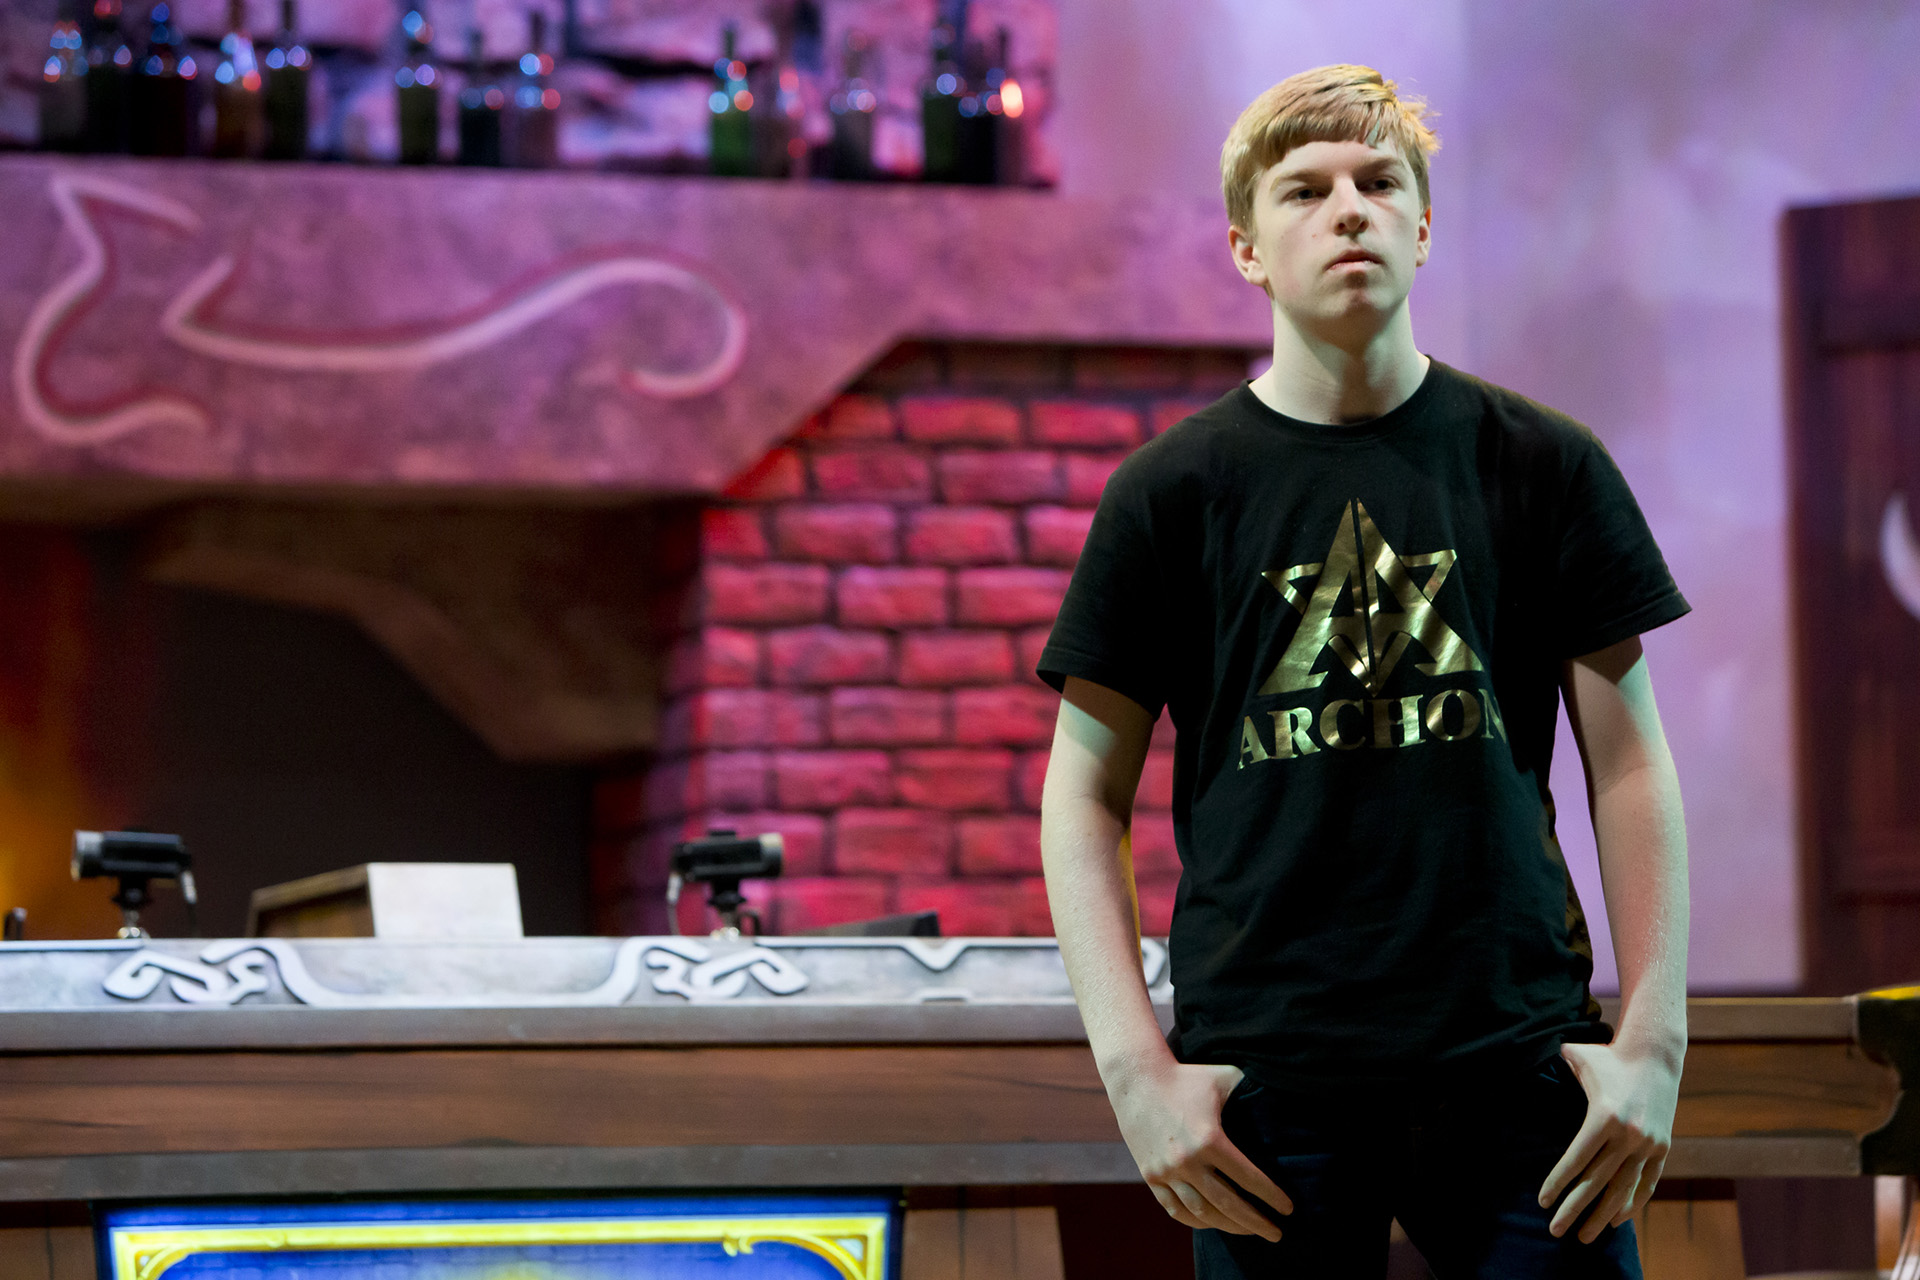 A 15-year-old just won Hearthstone's biggest tournament of the year so far